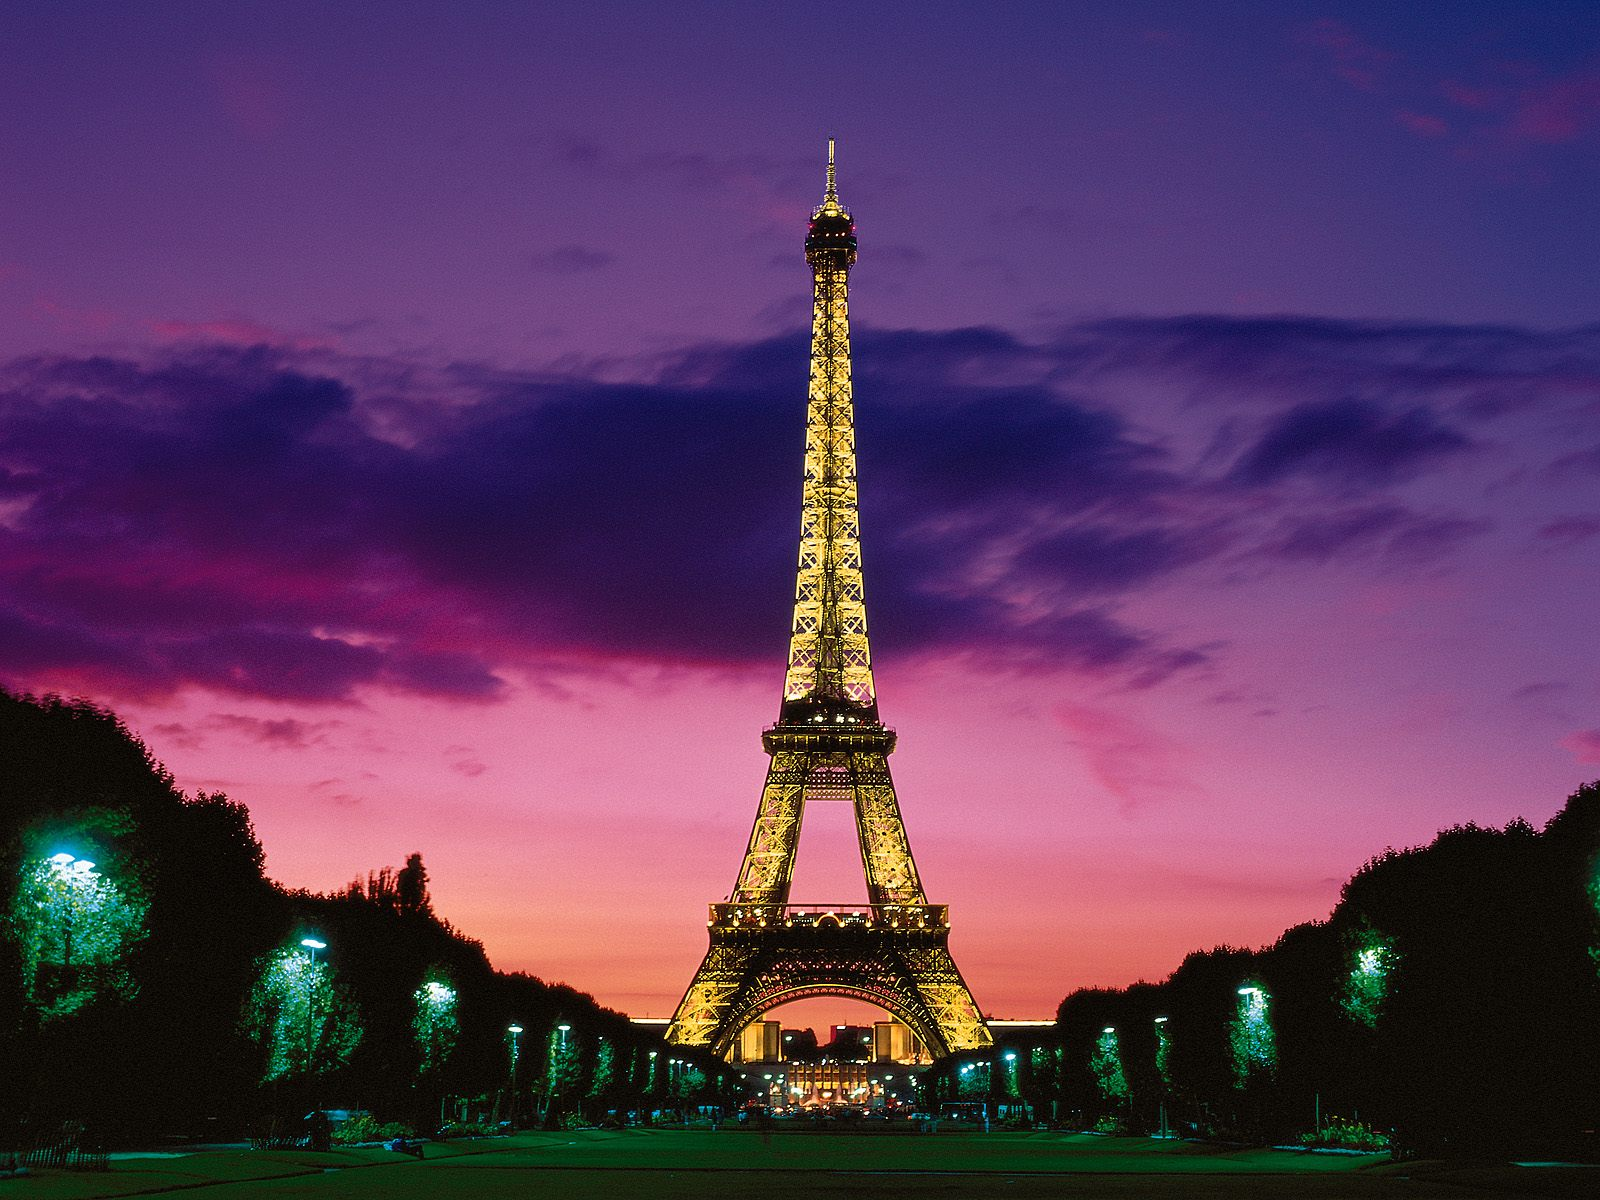 Copyright And The Eiffel Tower